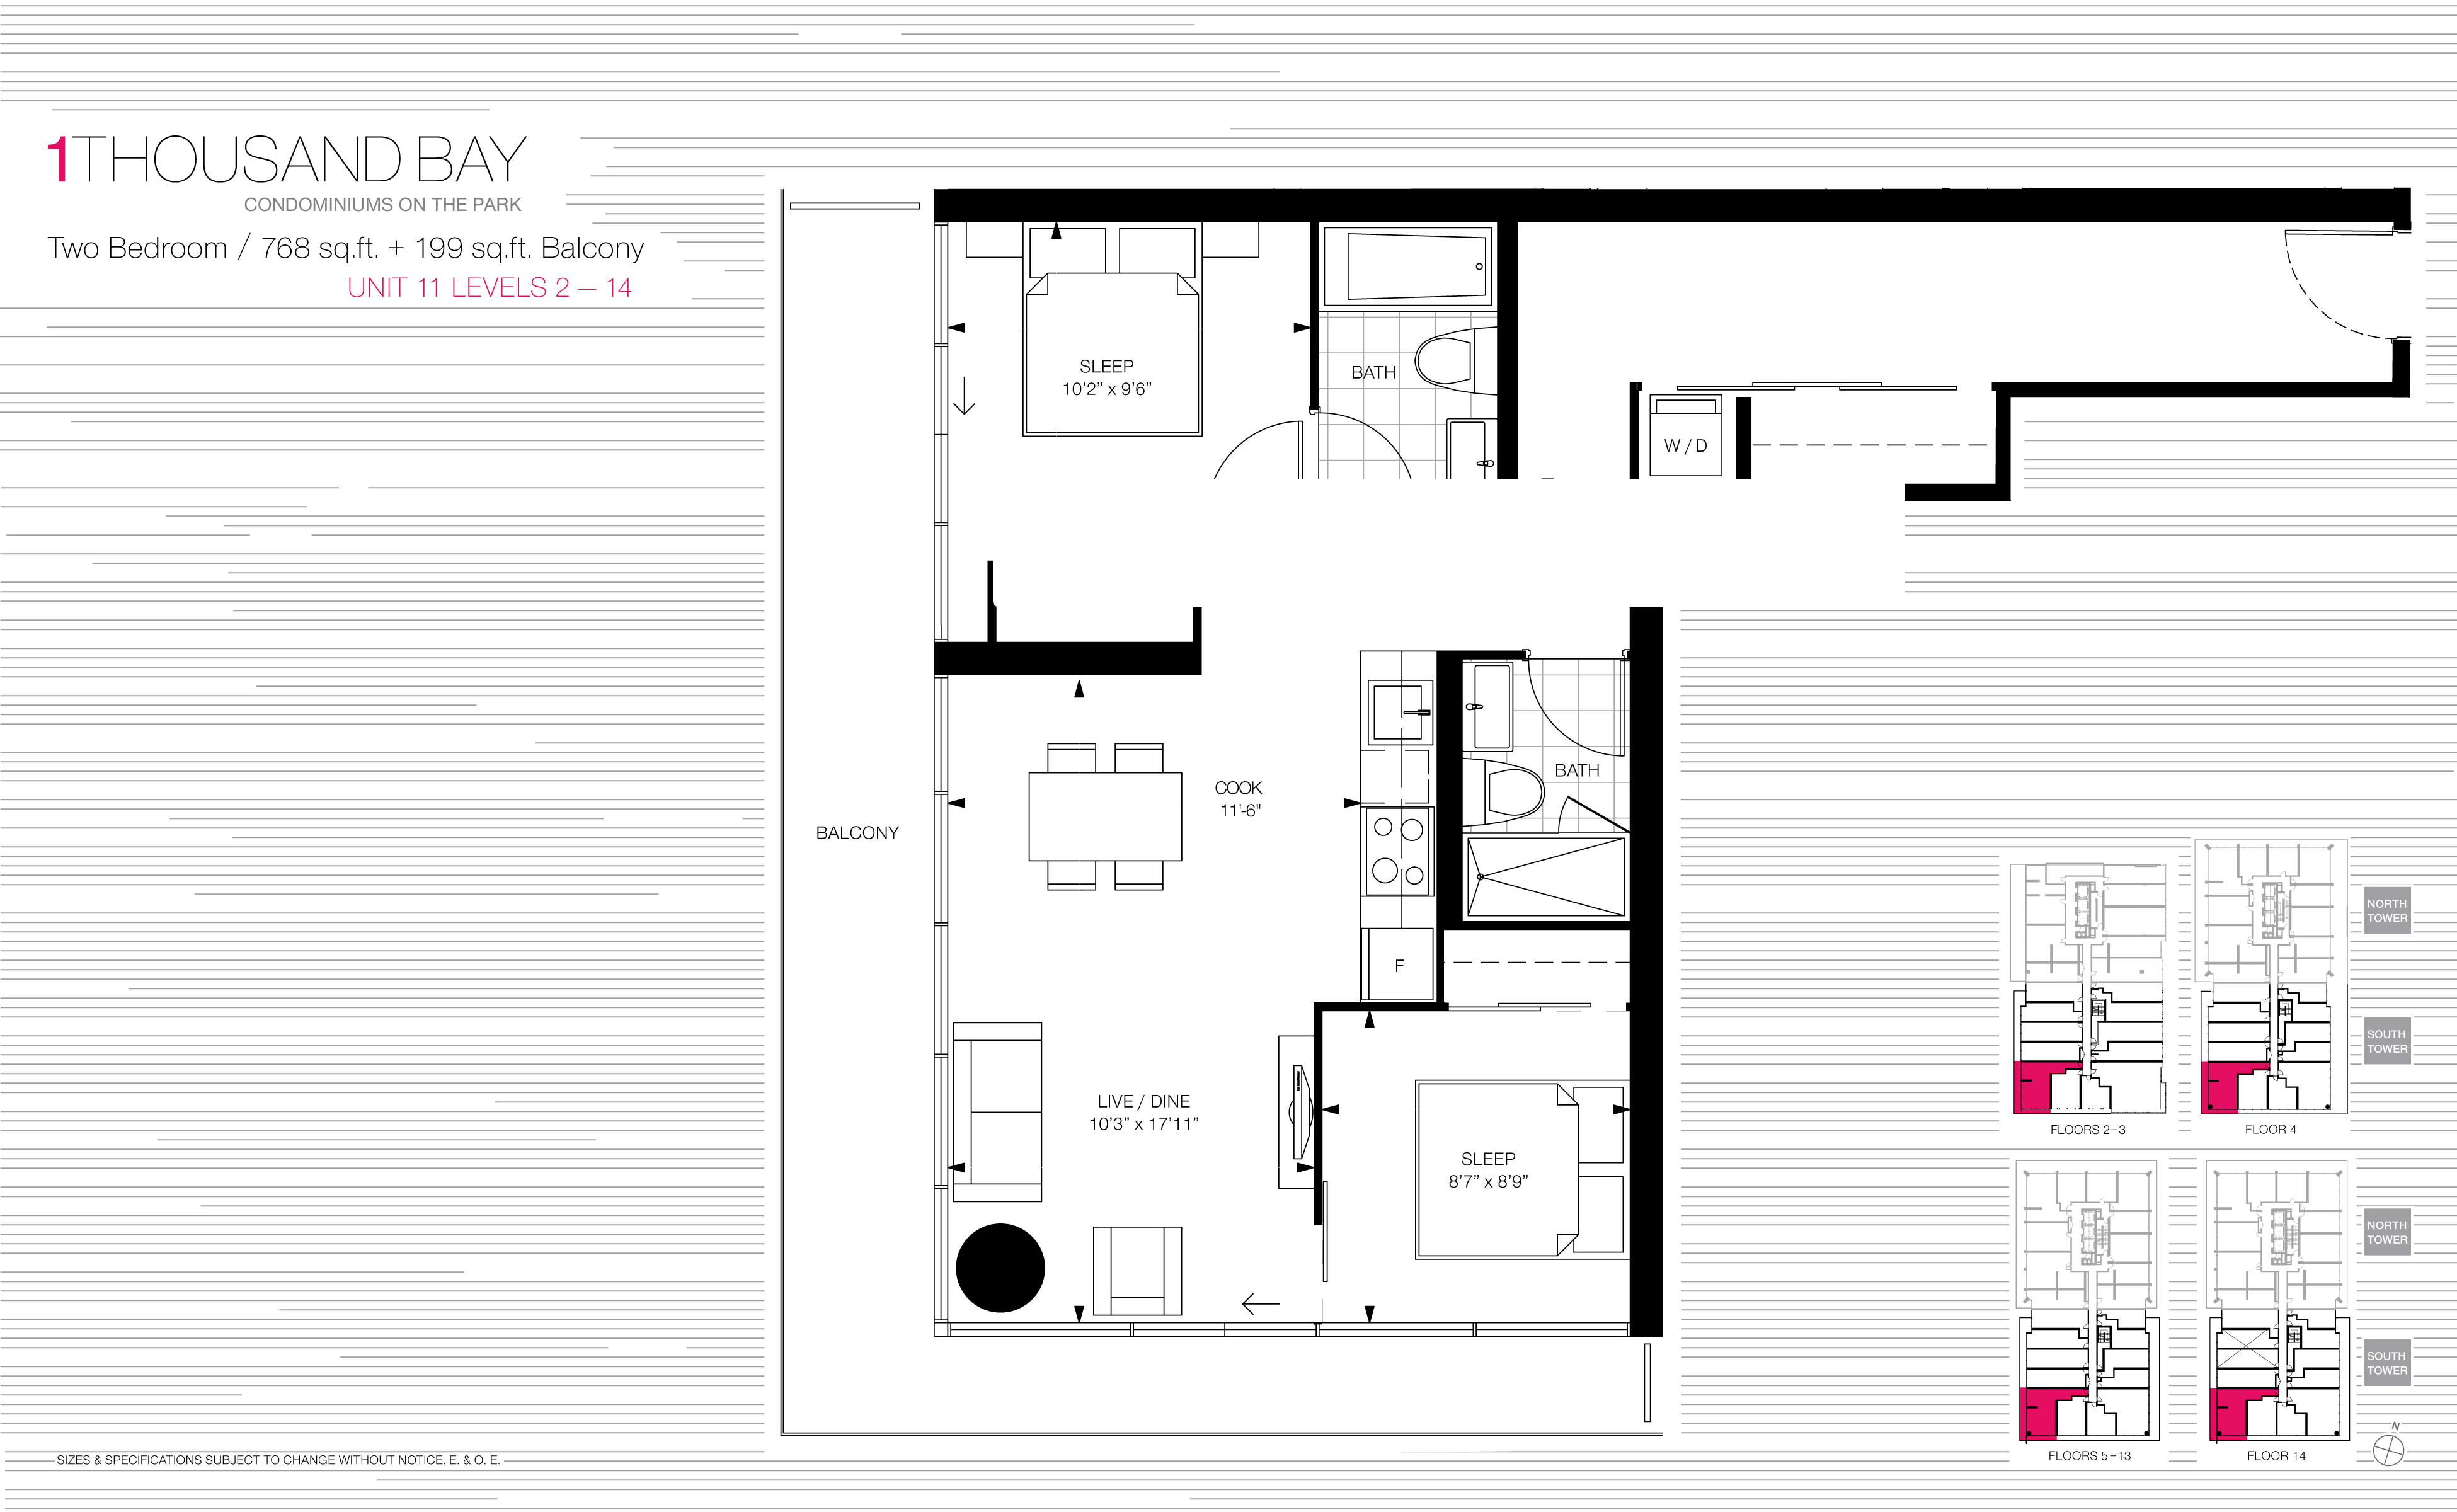 1000 BAY FLOORPLANS - TWO BED SUITE 768 SQ FT - CONTACT YOSSI KAPLAN